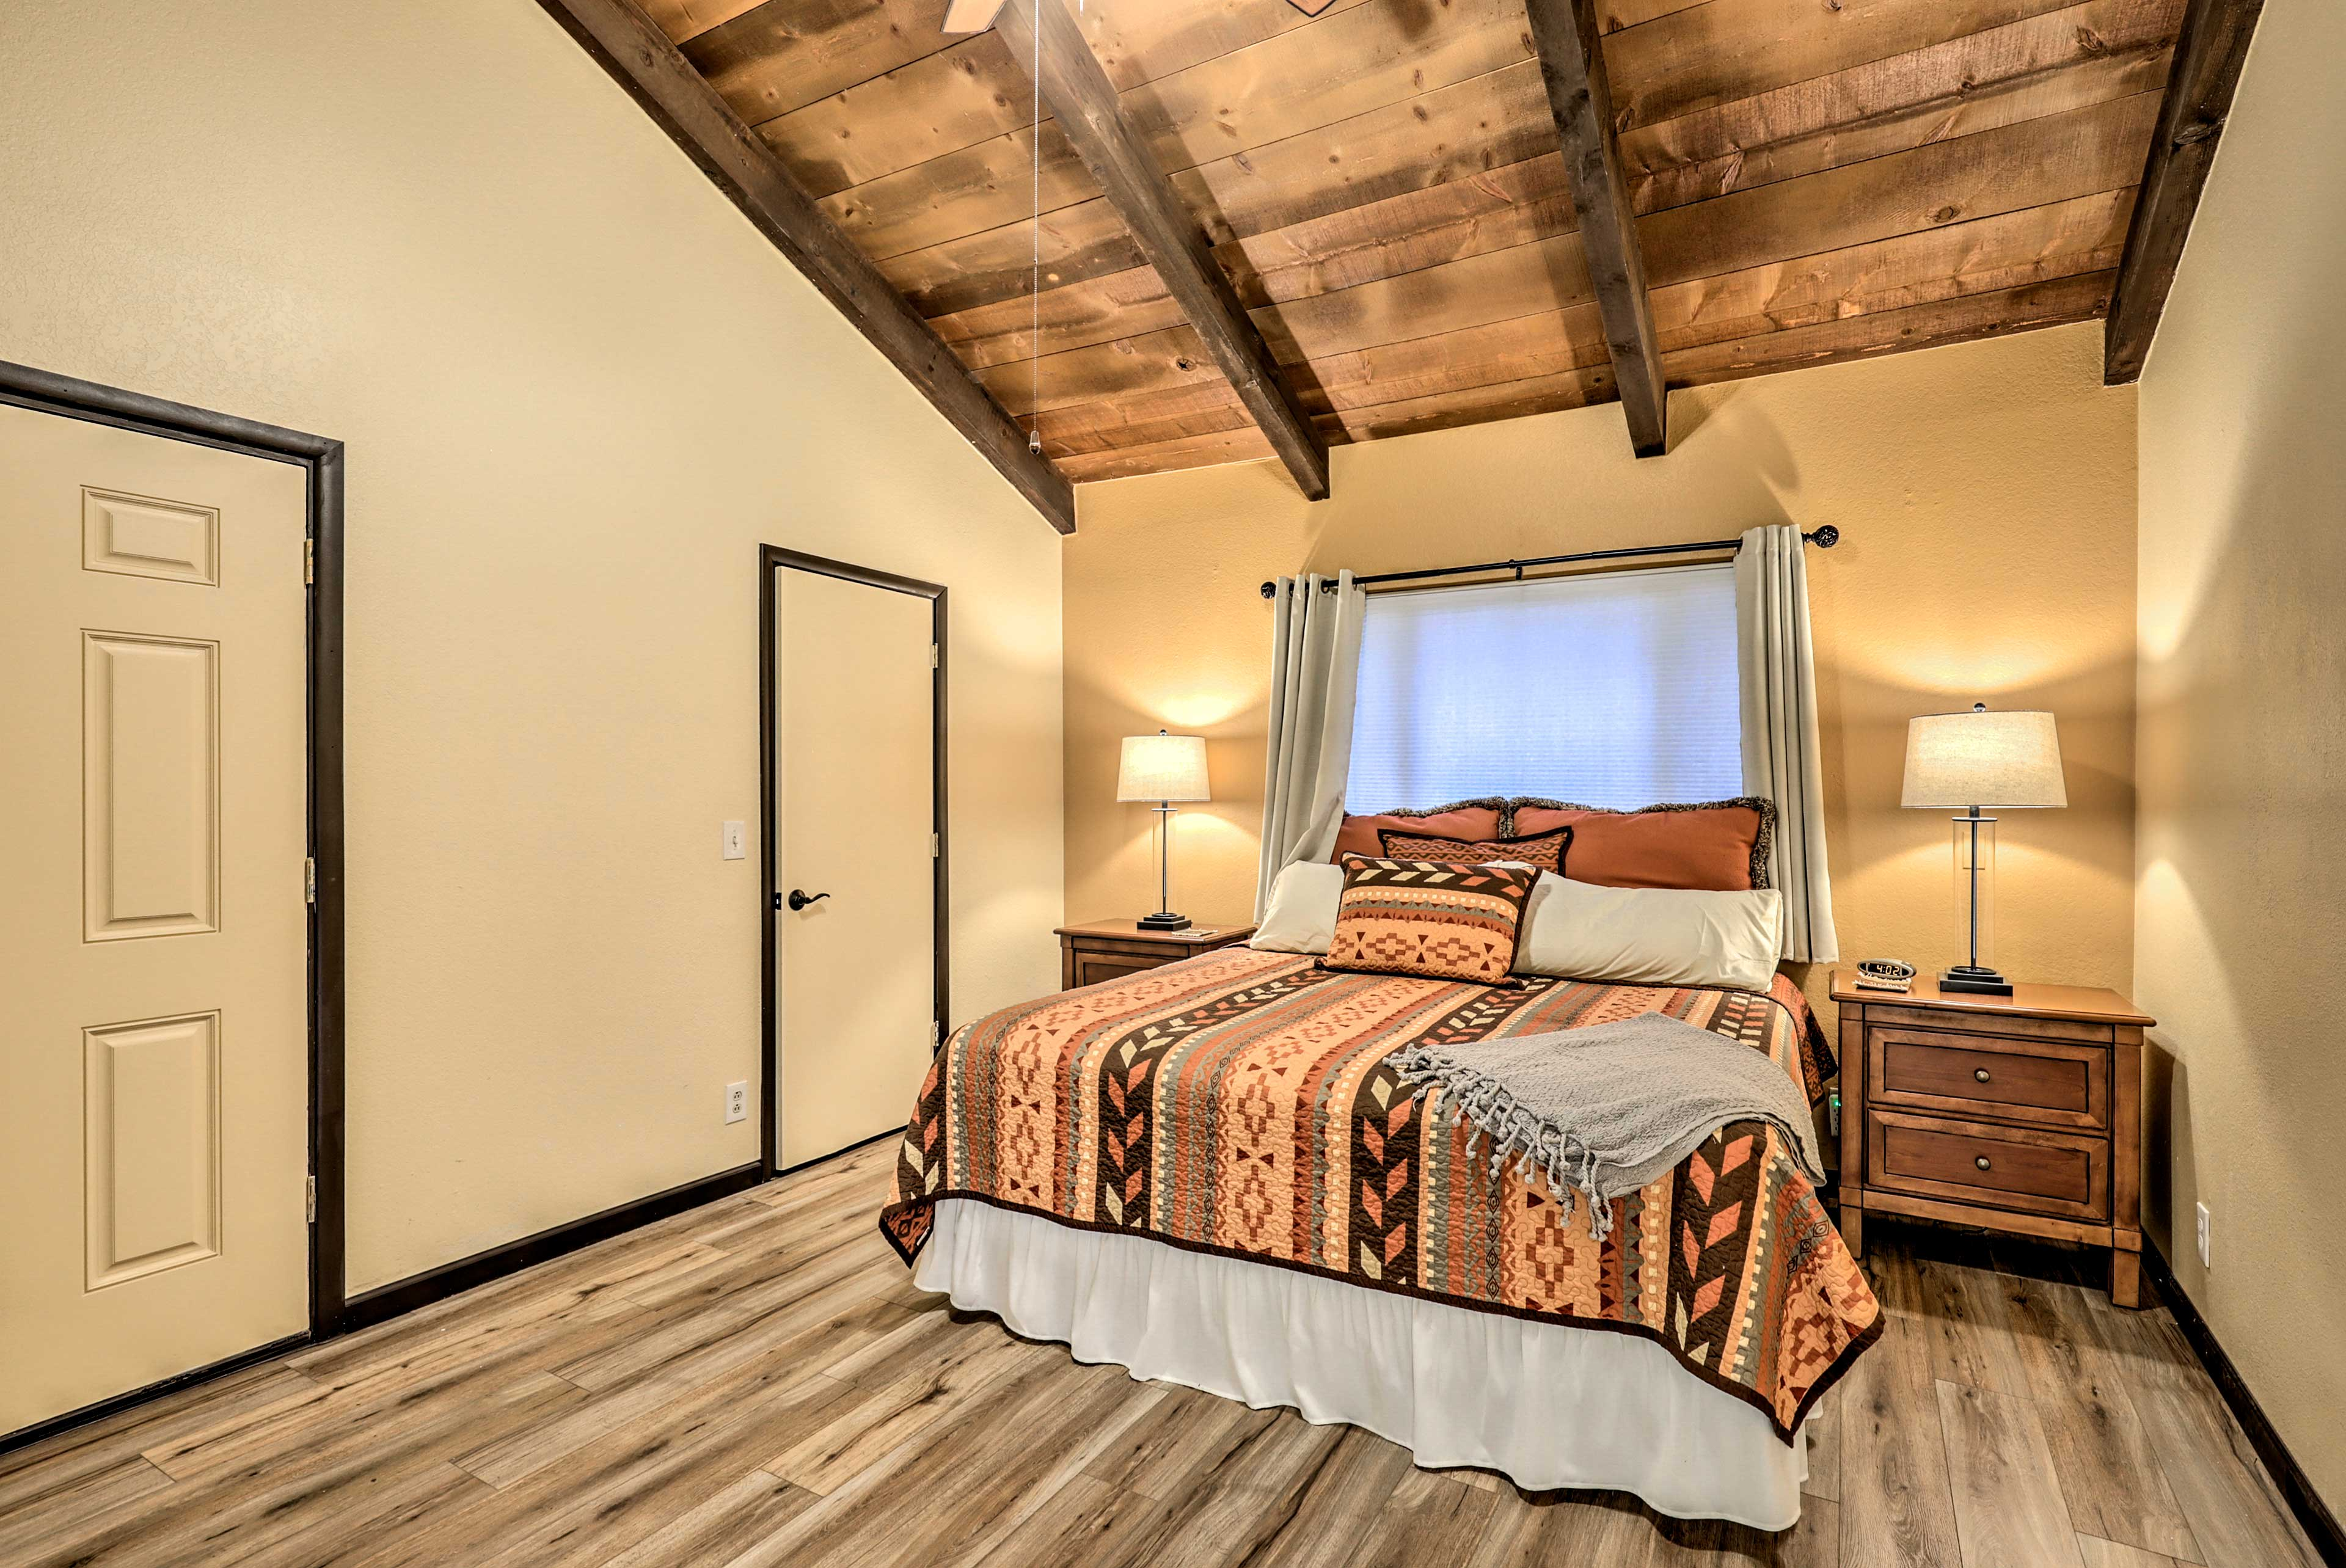 Sleep peacefully in the master bedroom after a day of fun.